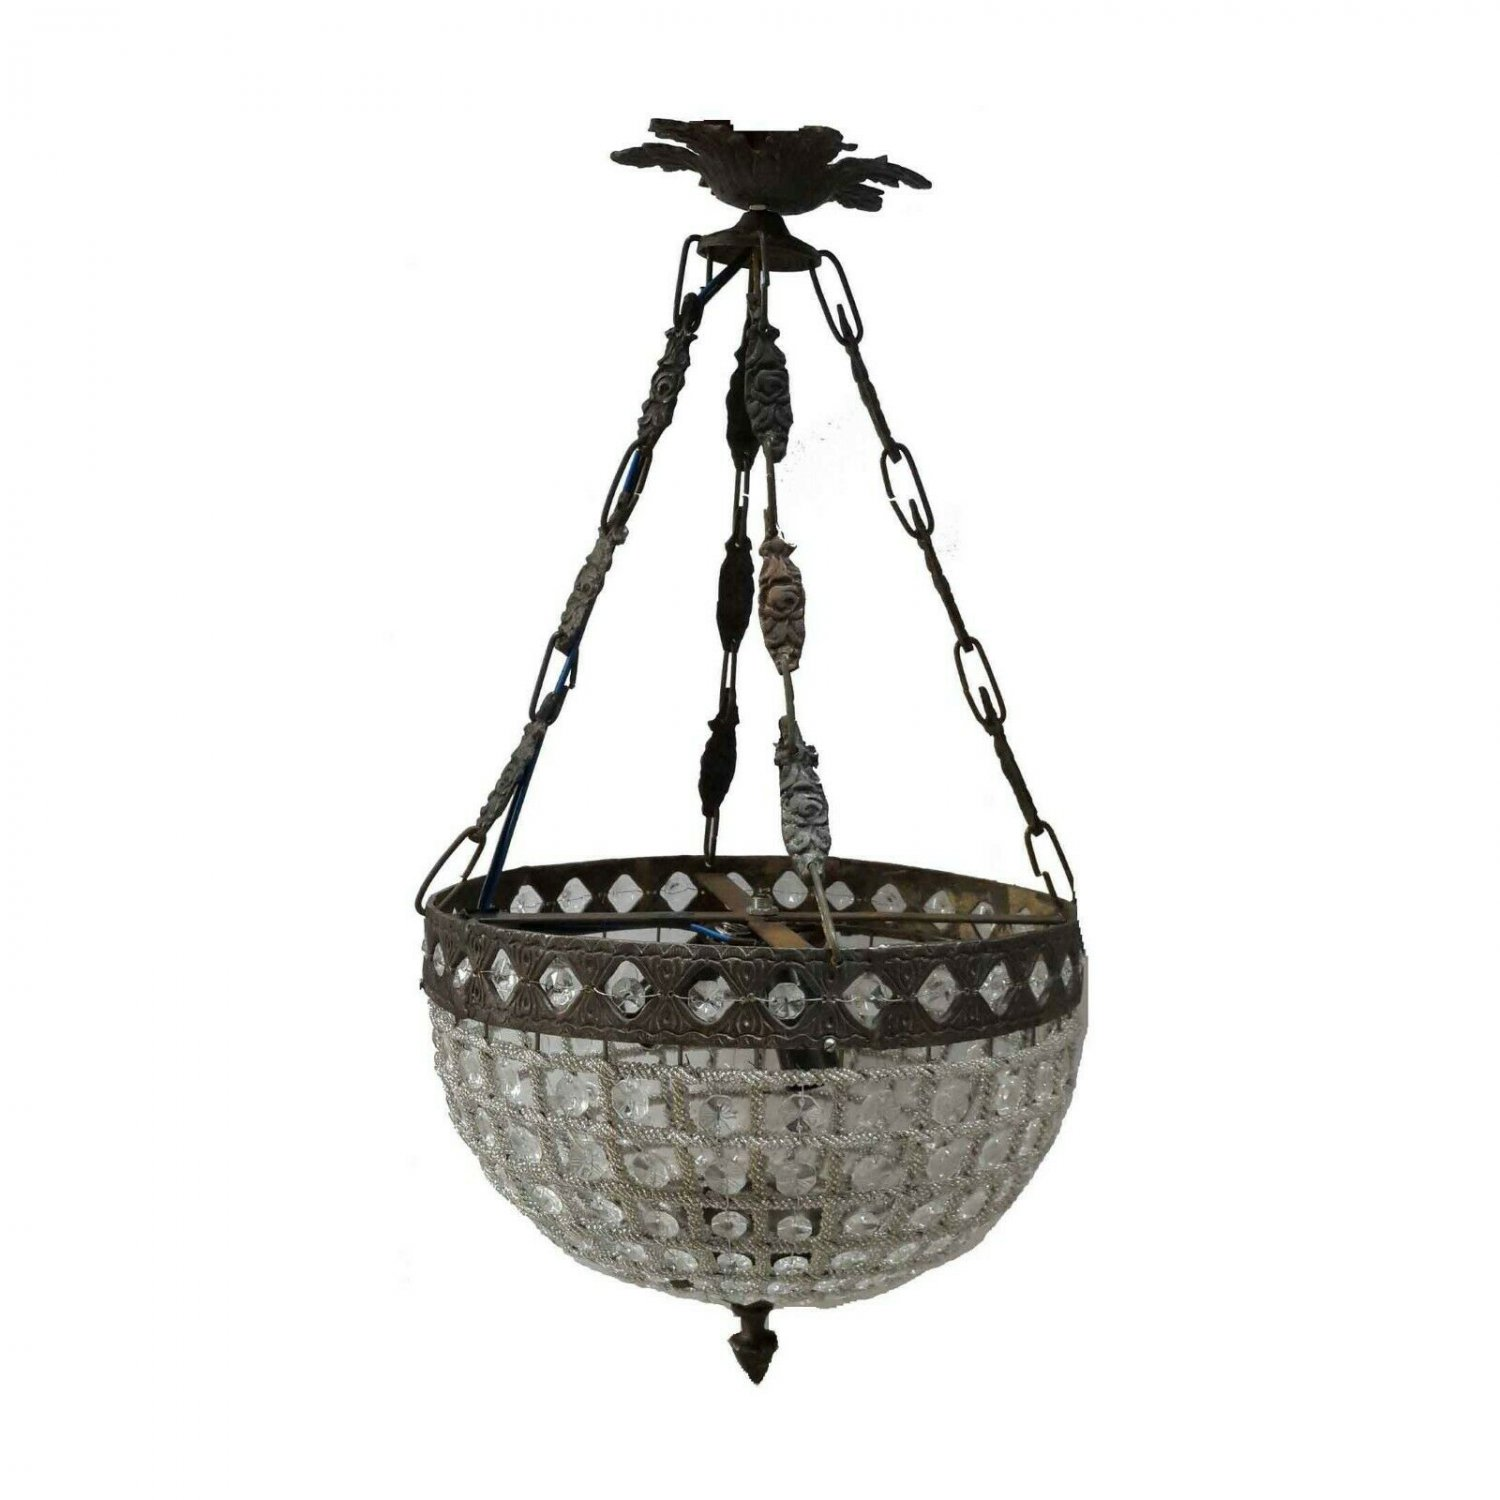 Hand Crafted Crystal Ornate Bronze Light Fixture Basket Ceiling Chandelier